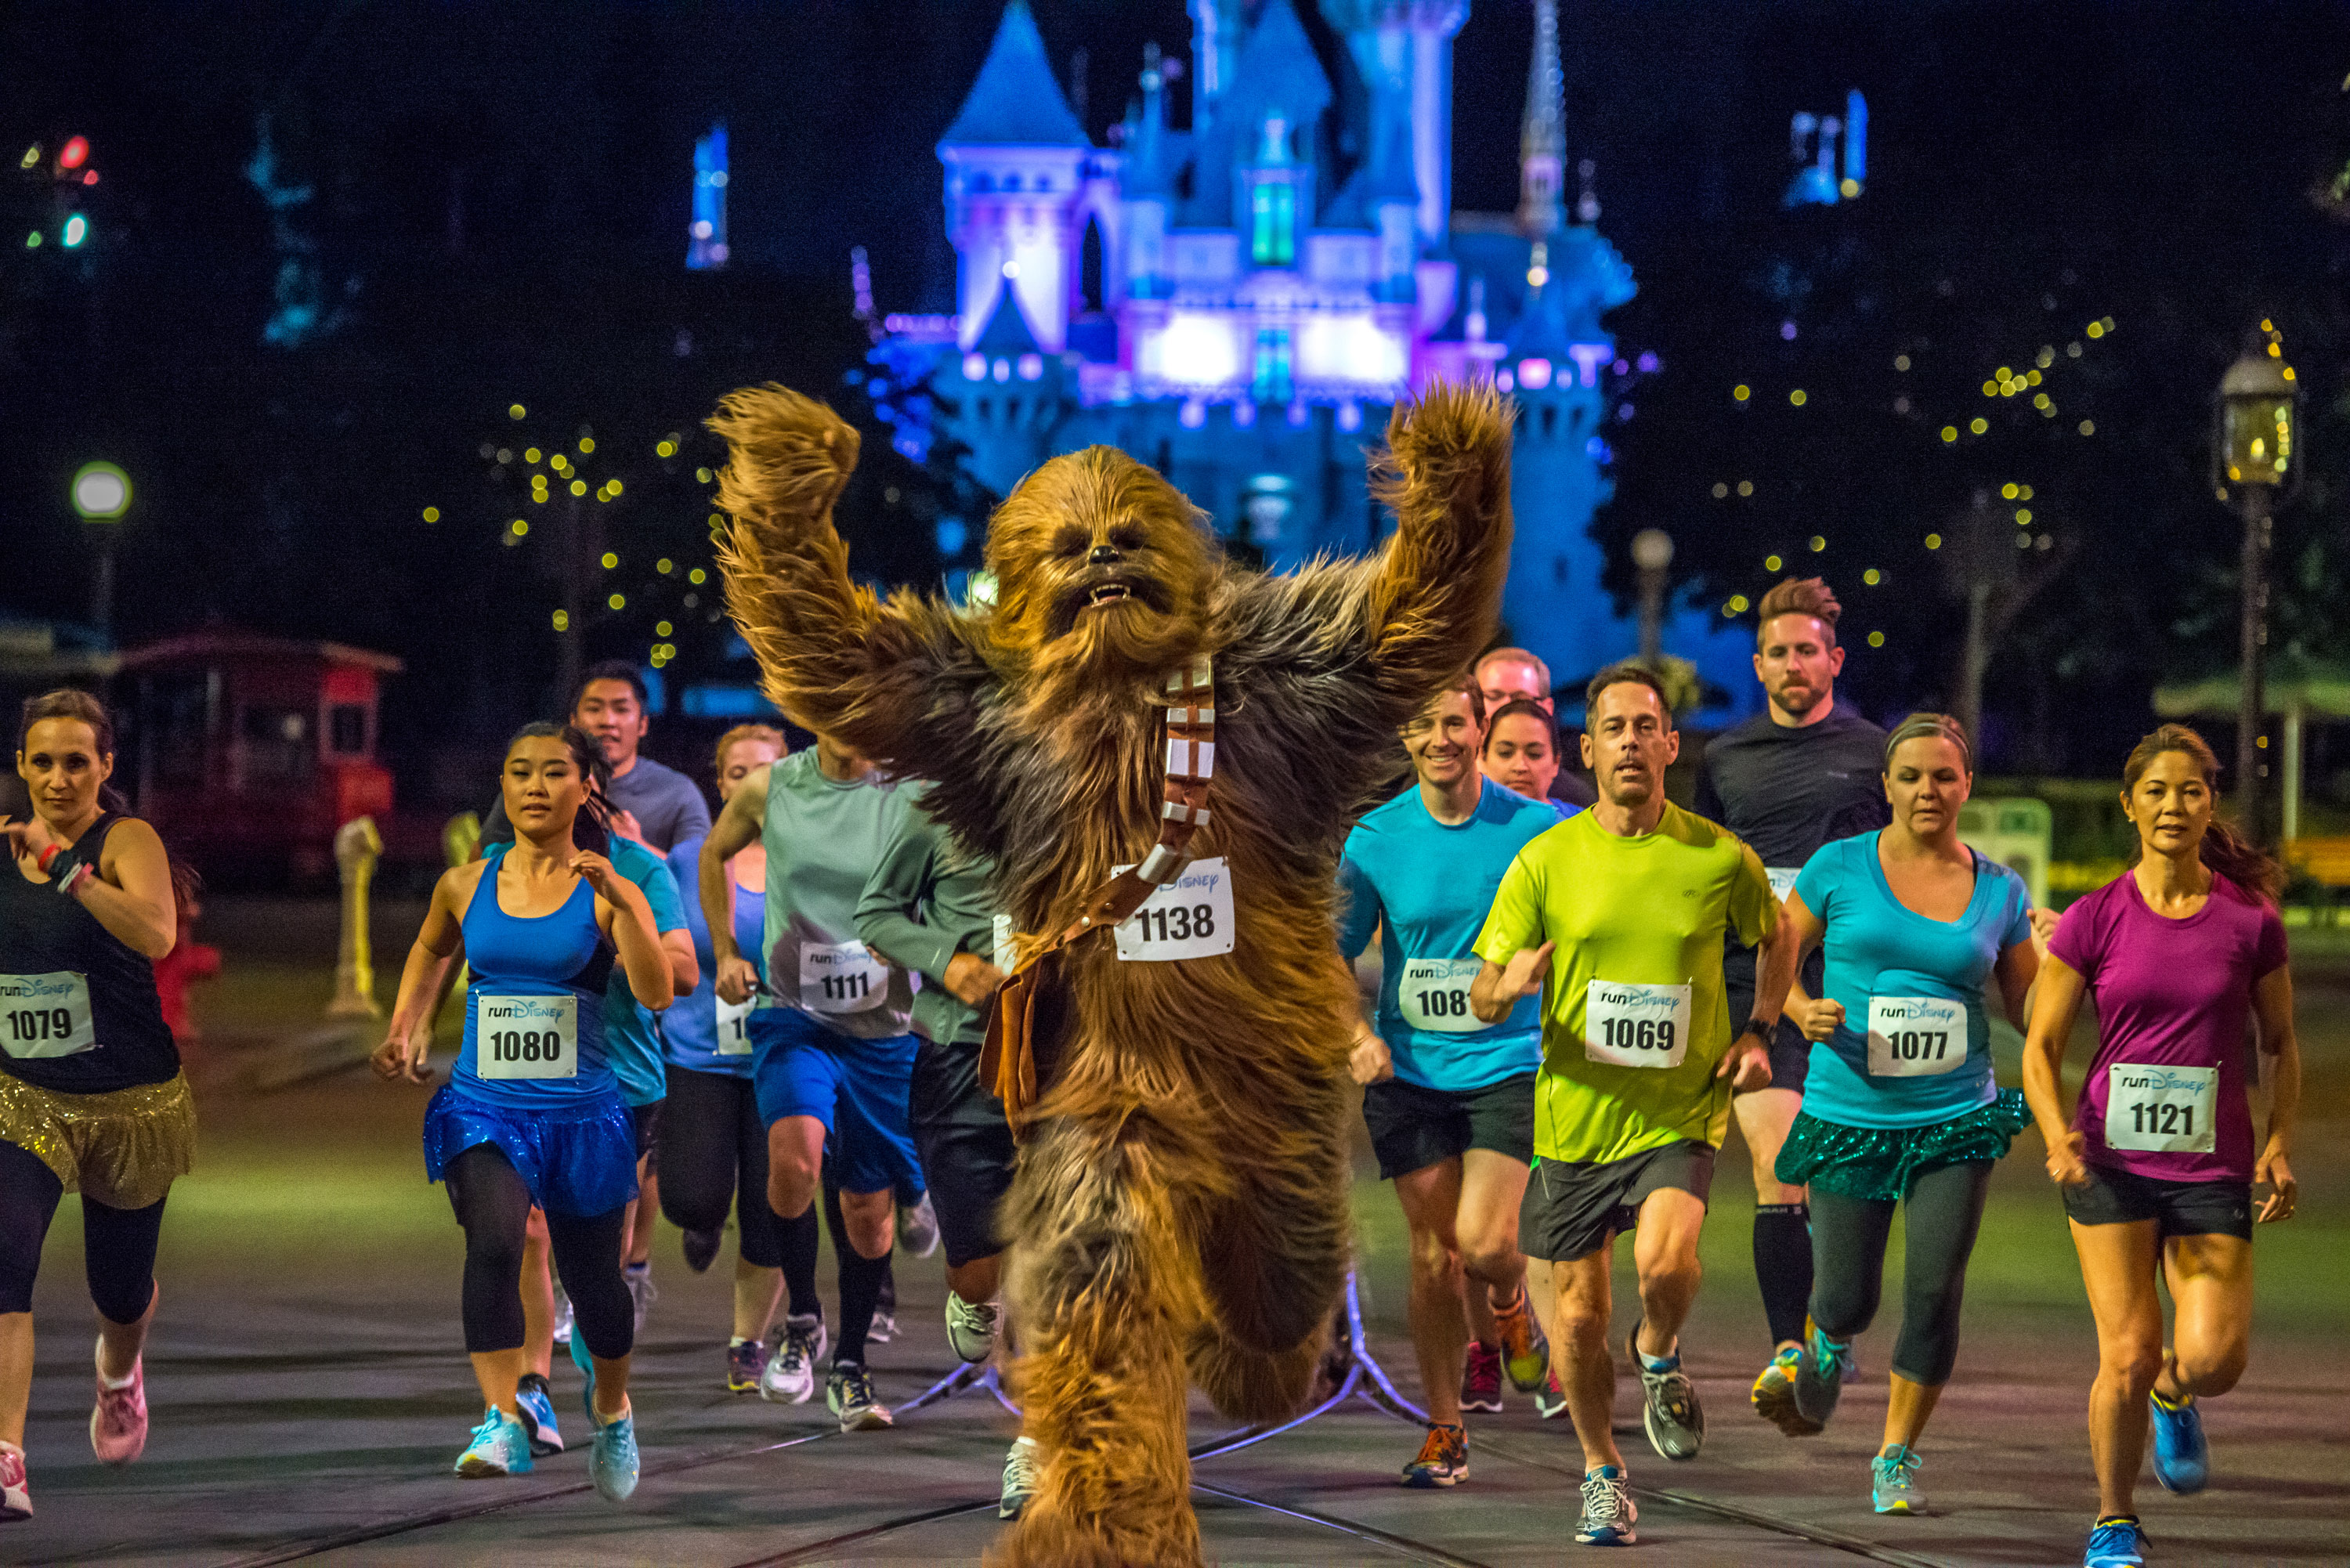 runDisney Joins the Force for Star Wars Half Marathon Weekend at Disneyland Resort